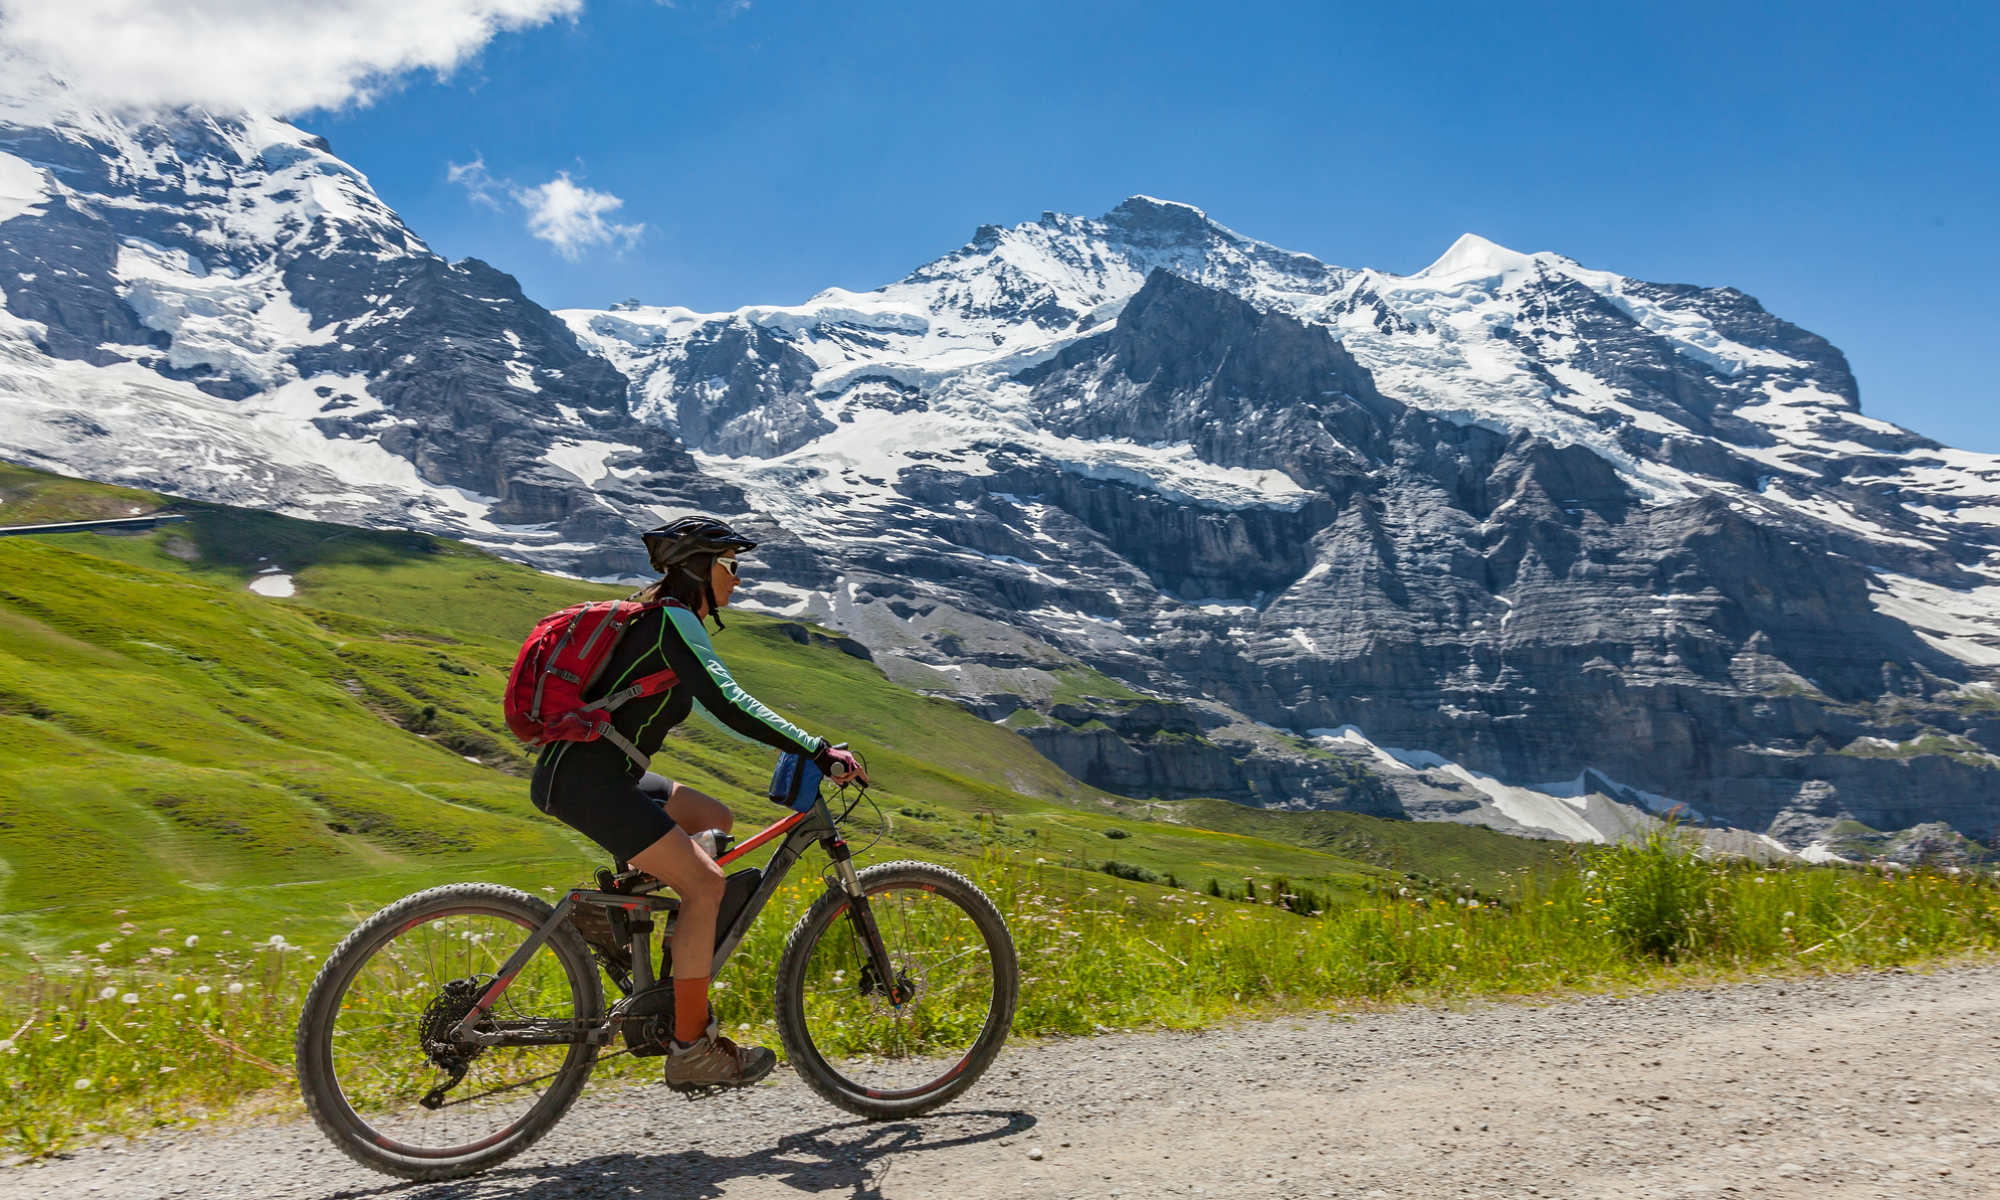 A cyclist is enjoying a sunny day in the mountains.